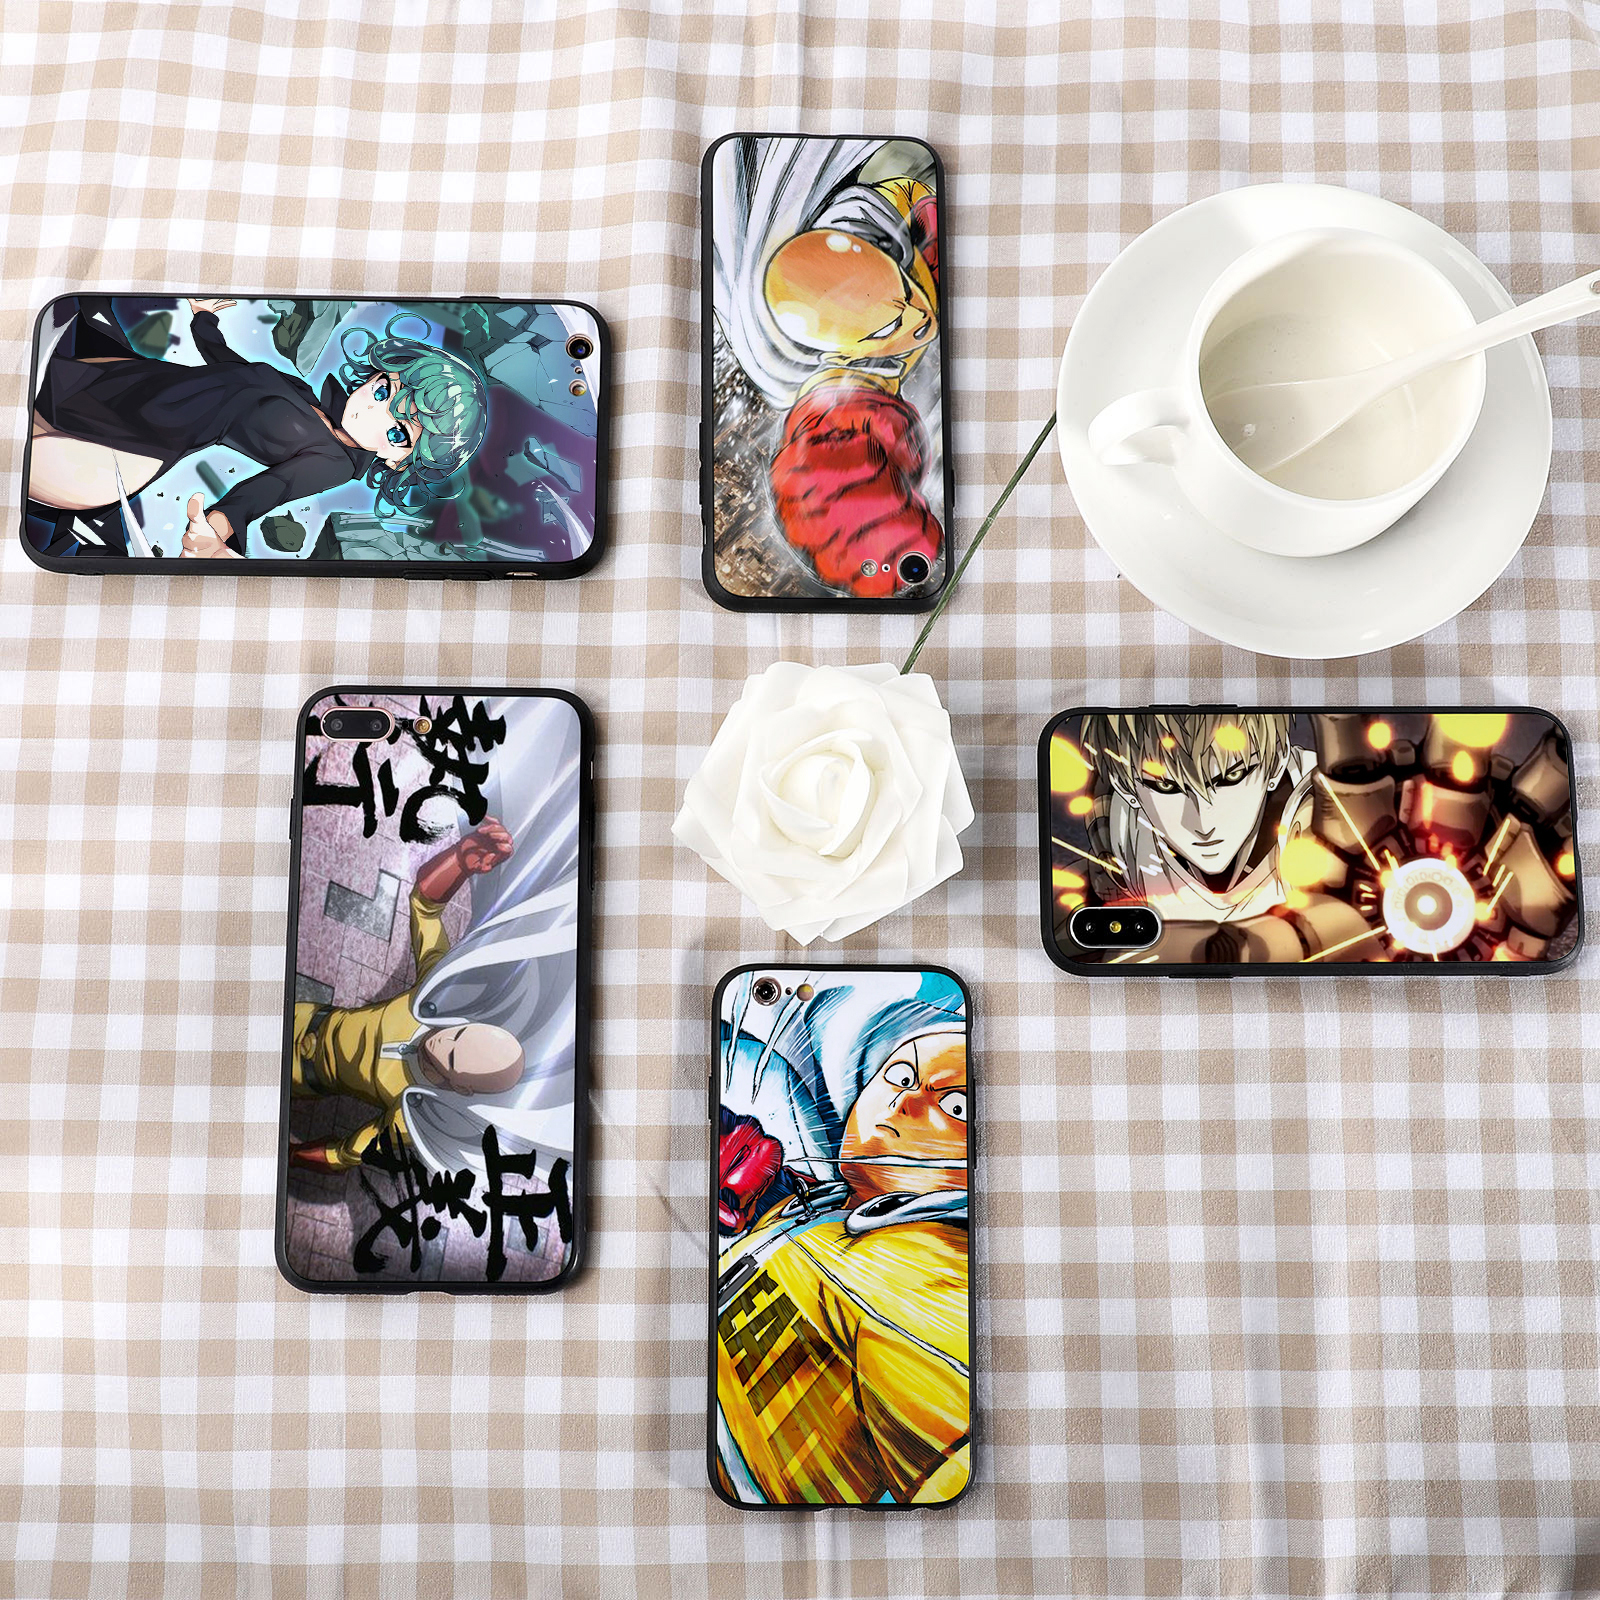 One Punch Man Design 2 iphone case